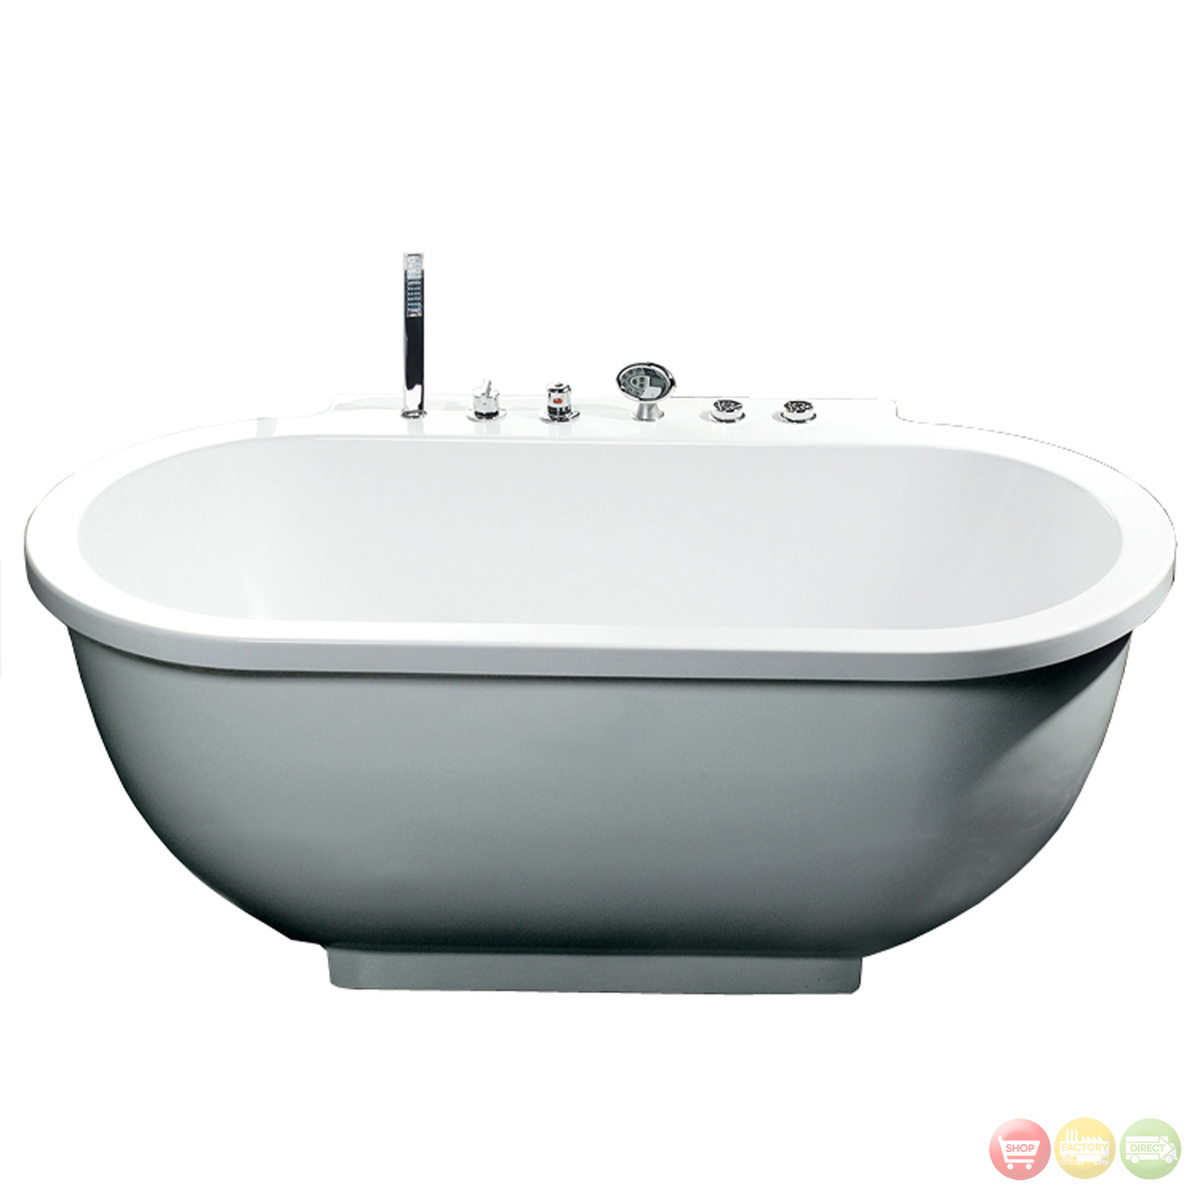 Ariel contemporary bathtub am128jdclz for Royal whirlpool baths